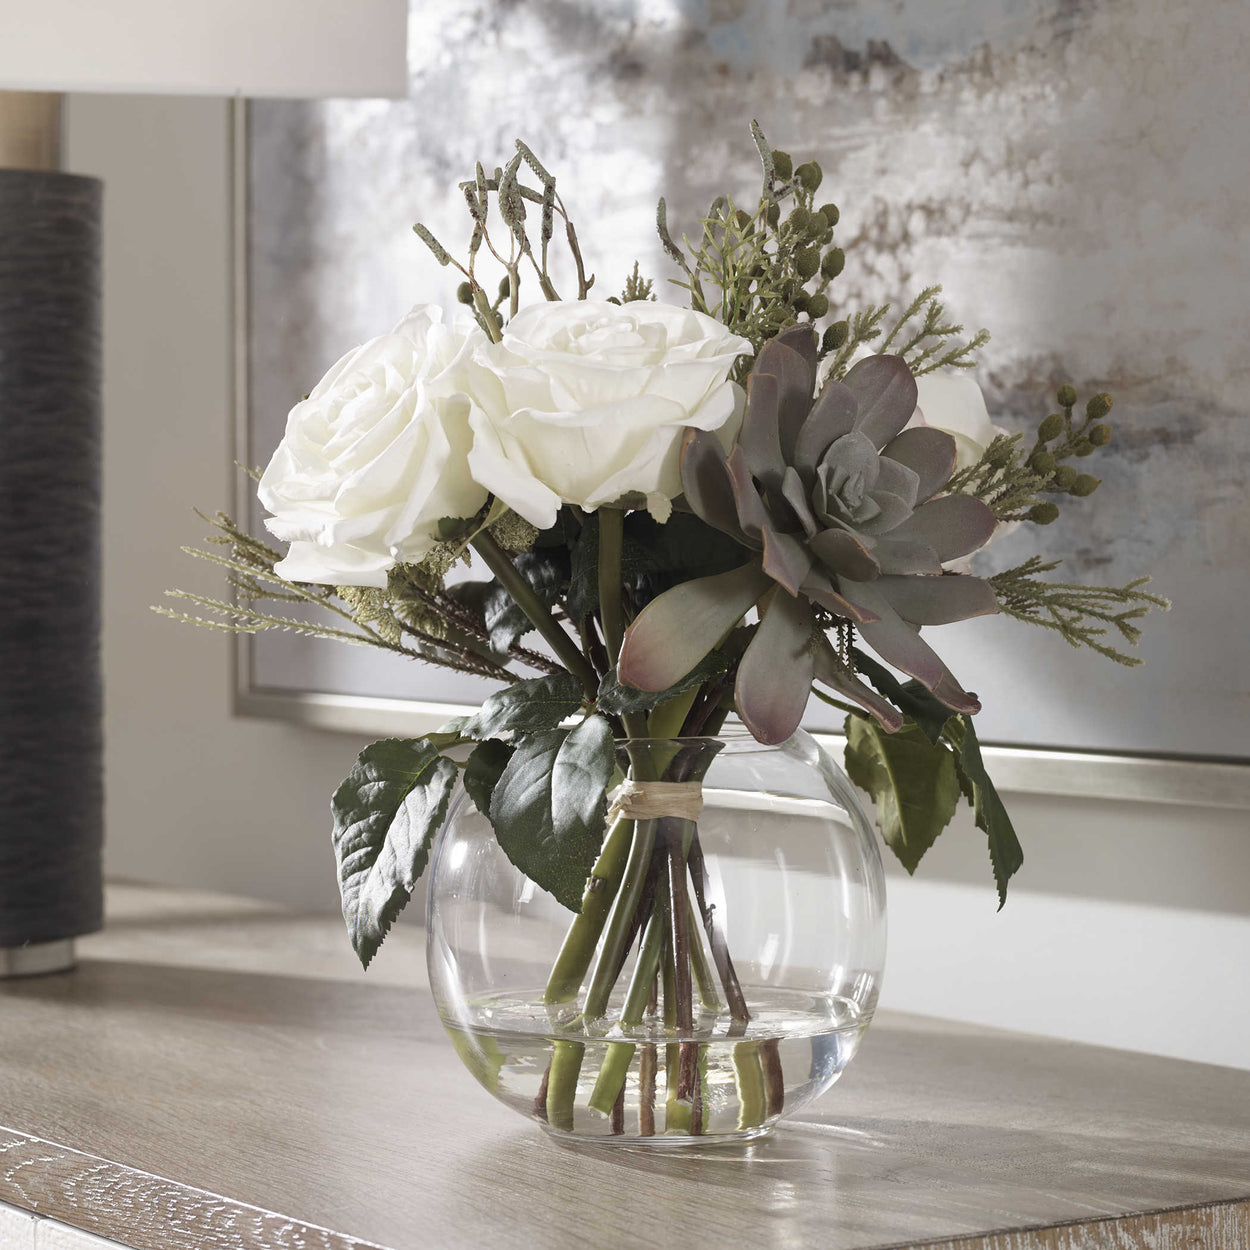 Modern floral bouquet features a unique mix of berries, greenery, seed pods, succulents and cream roses in a clear glass bud vase with faux water.